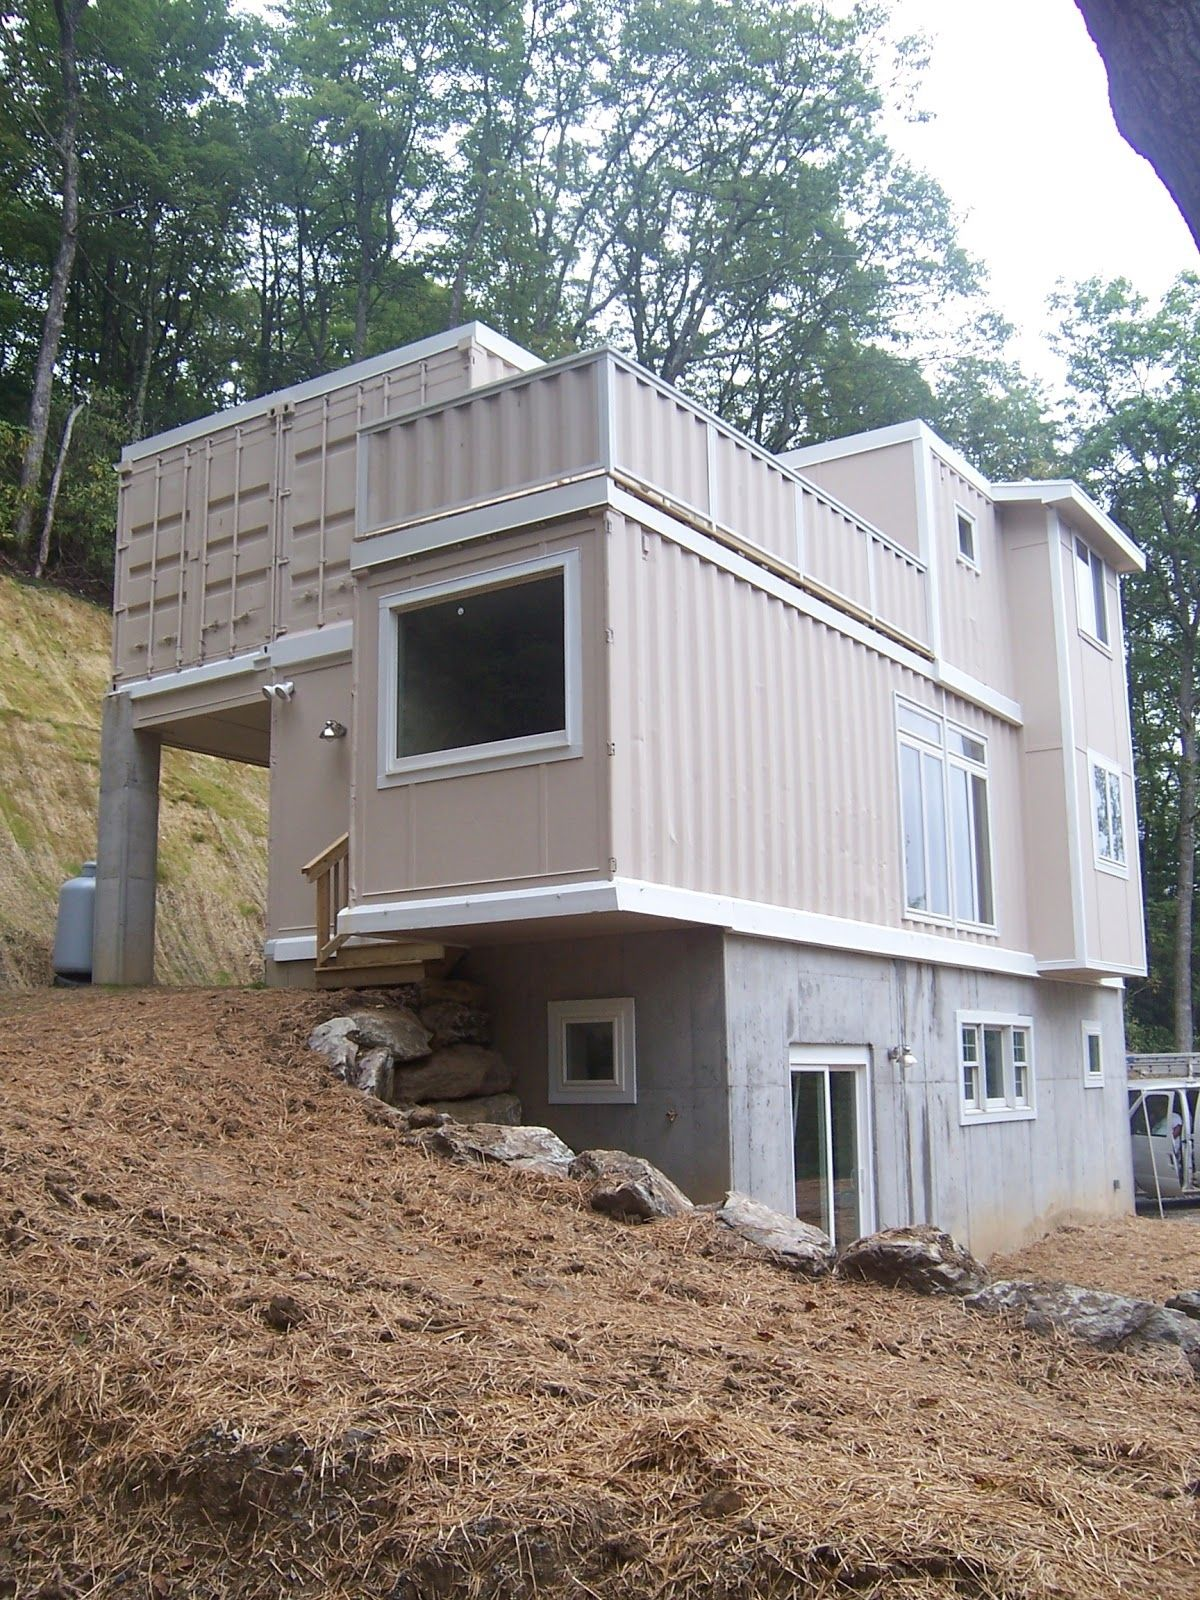 Modern shipping container homes in shipping container home for Container home design software